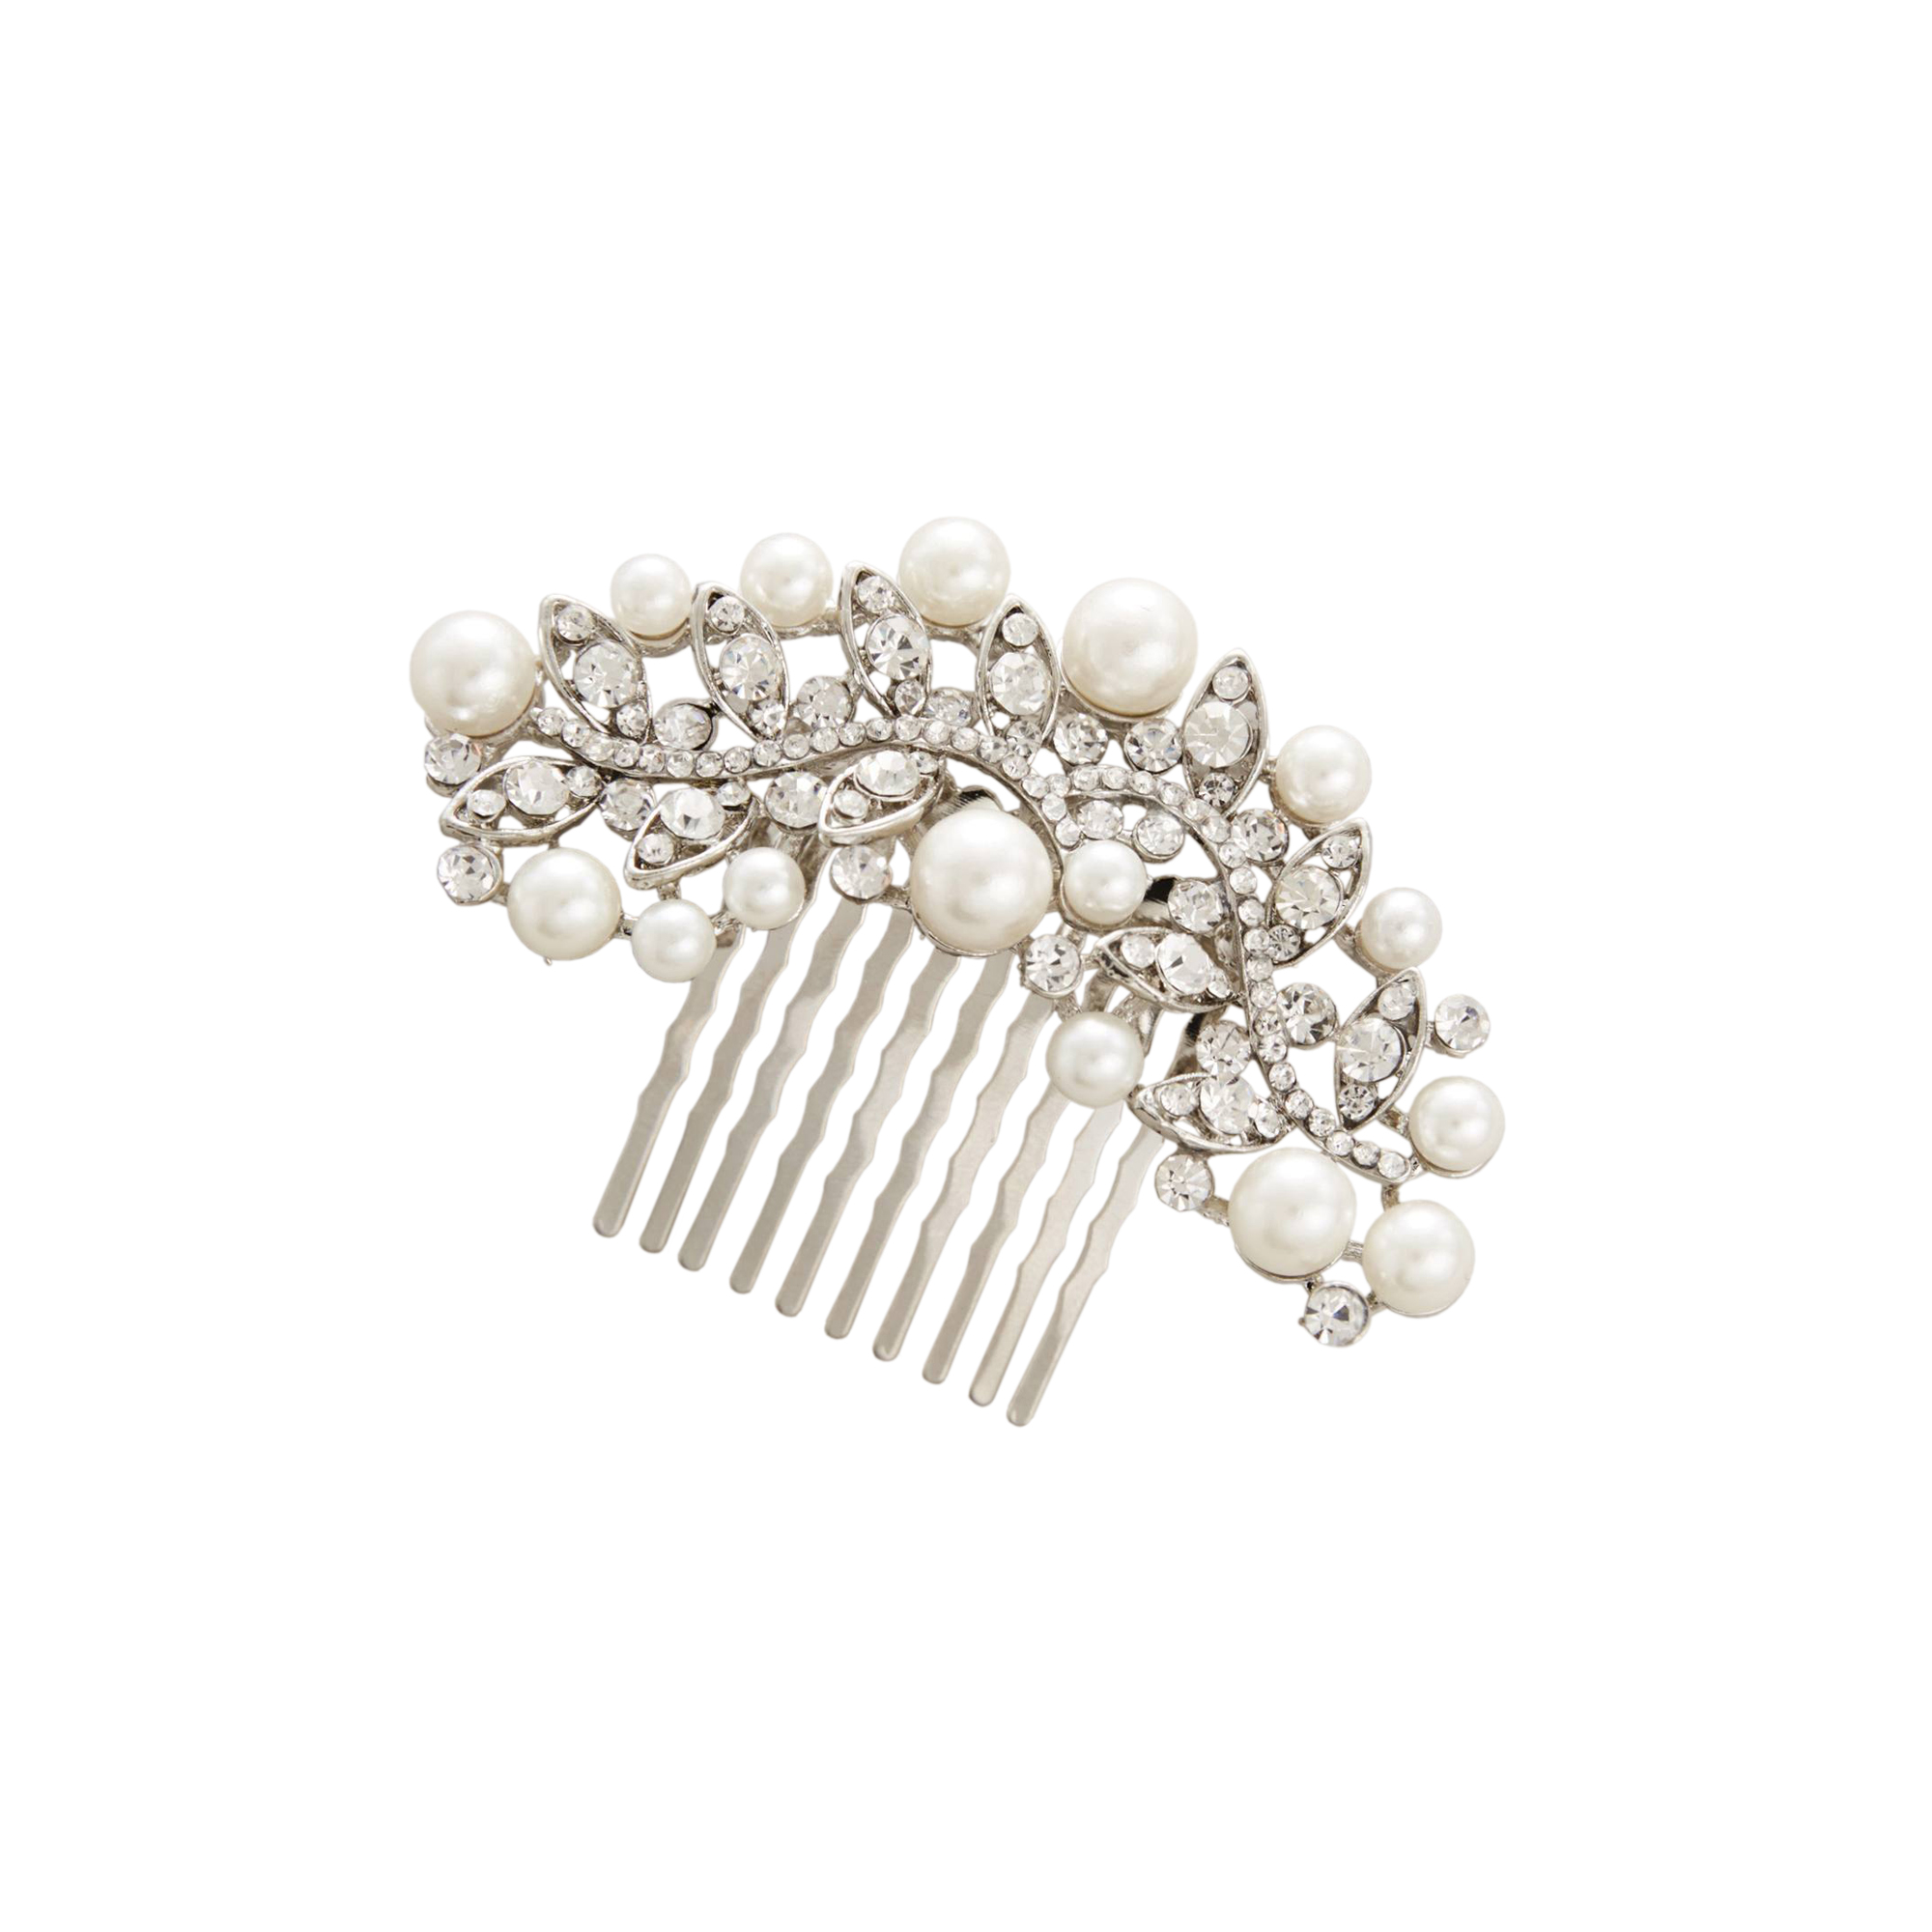 Anthropologie Pearled Majalis Comb